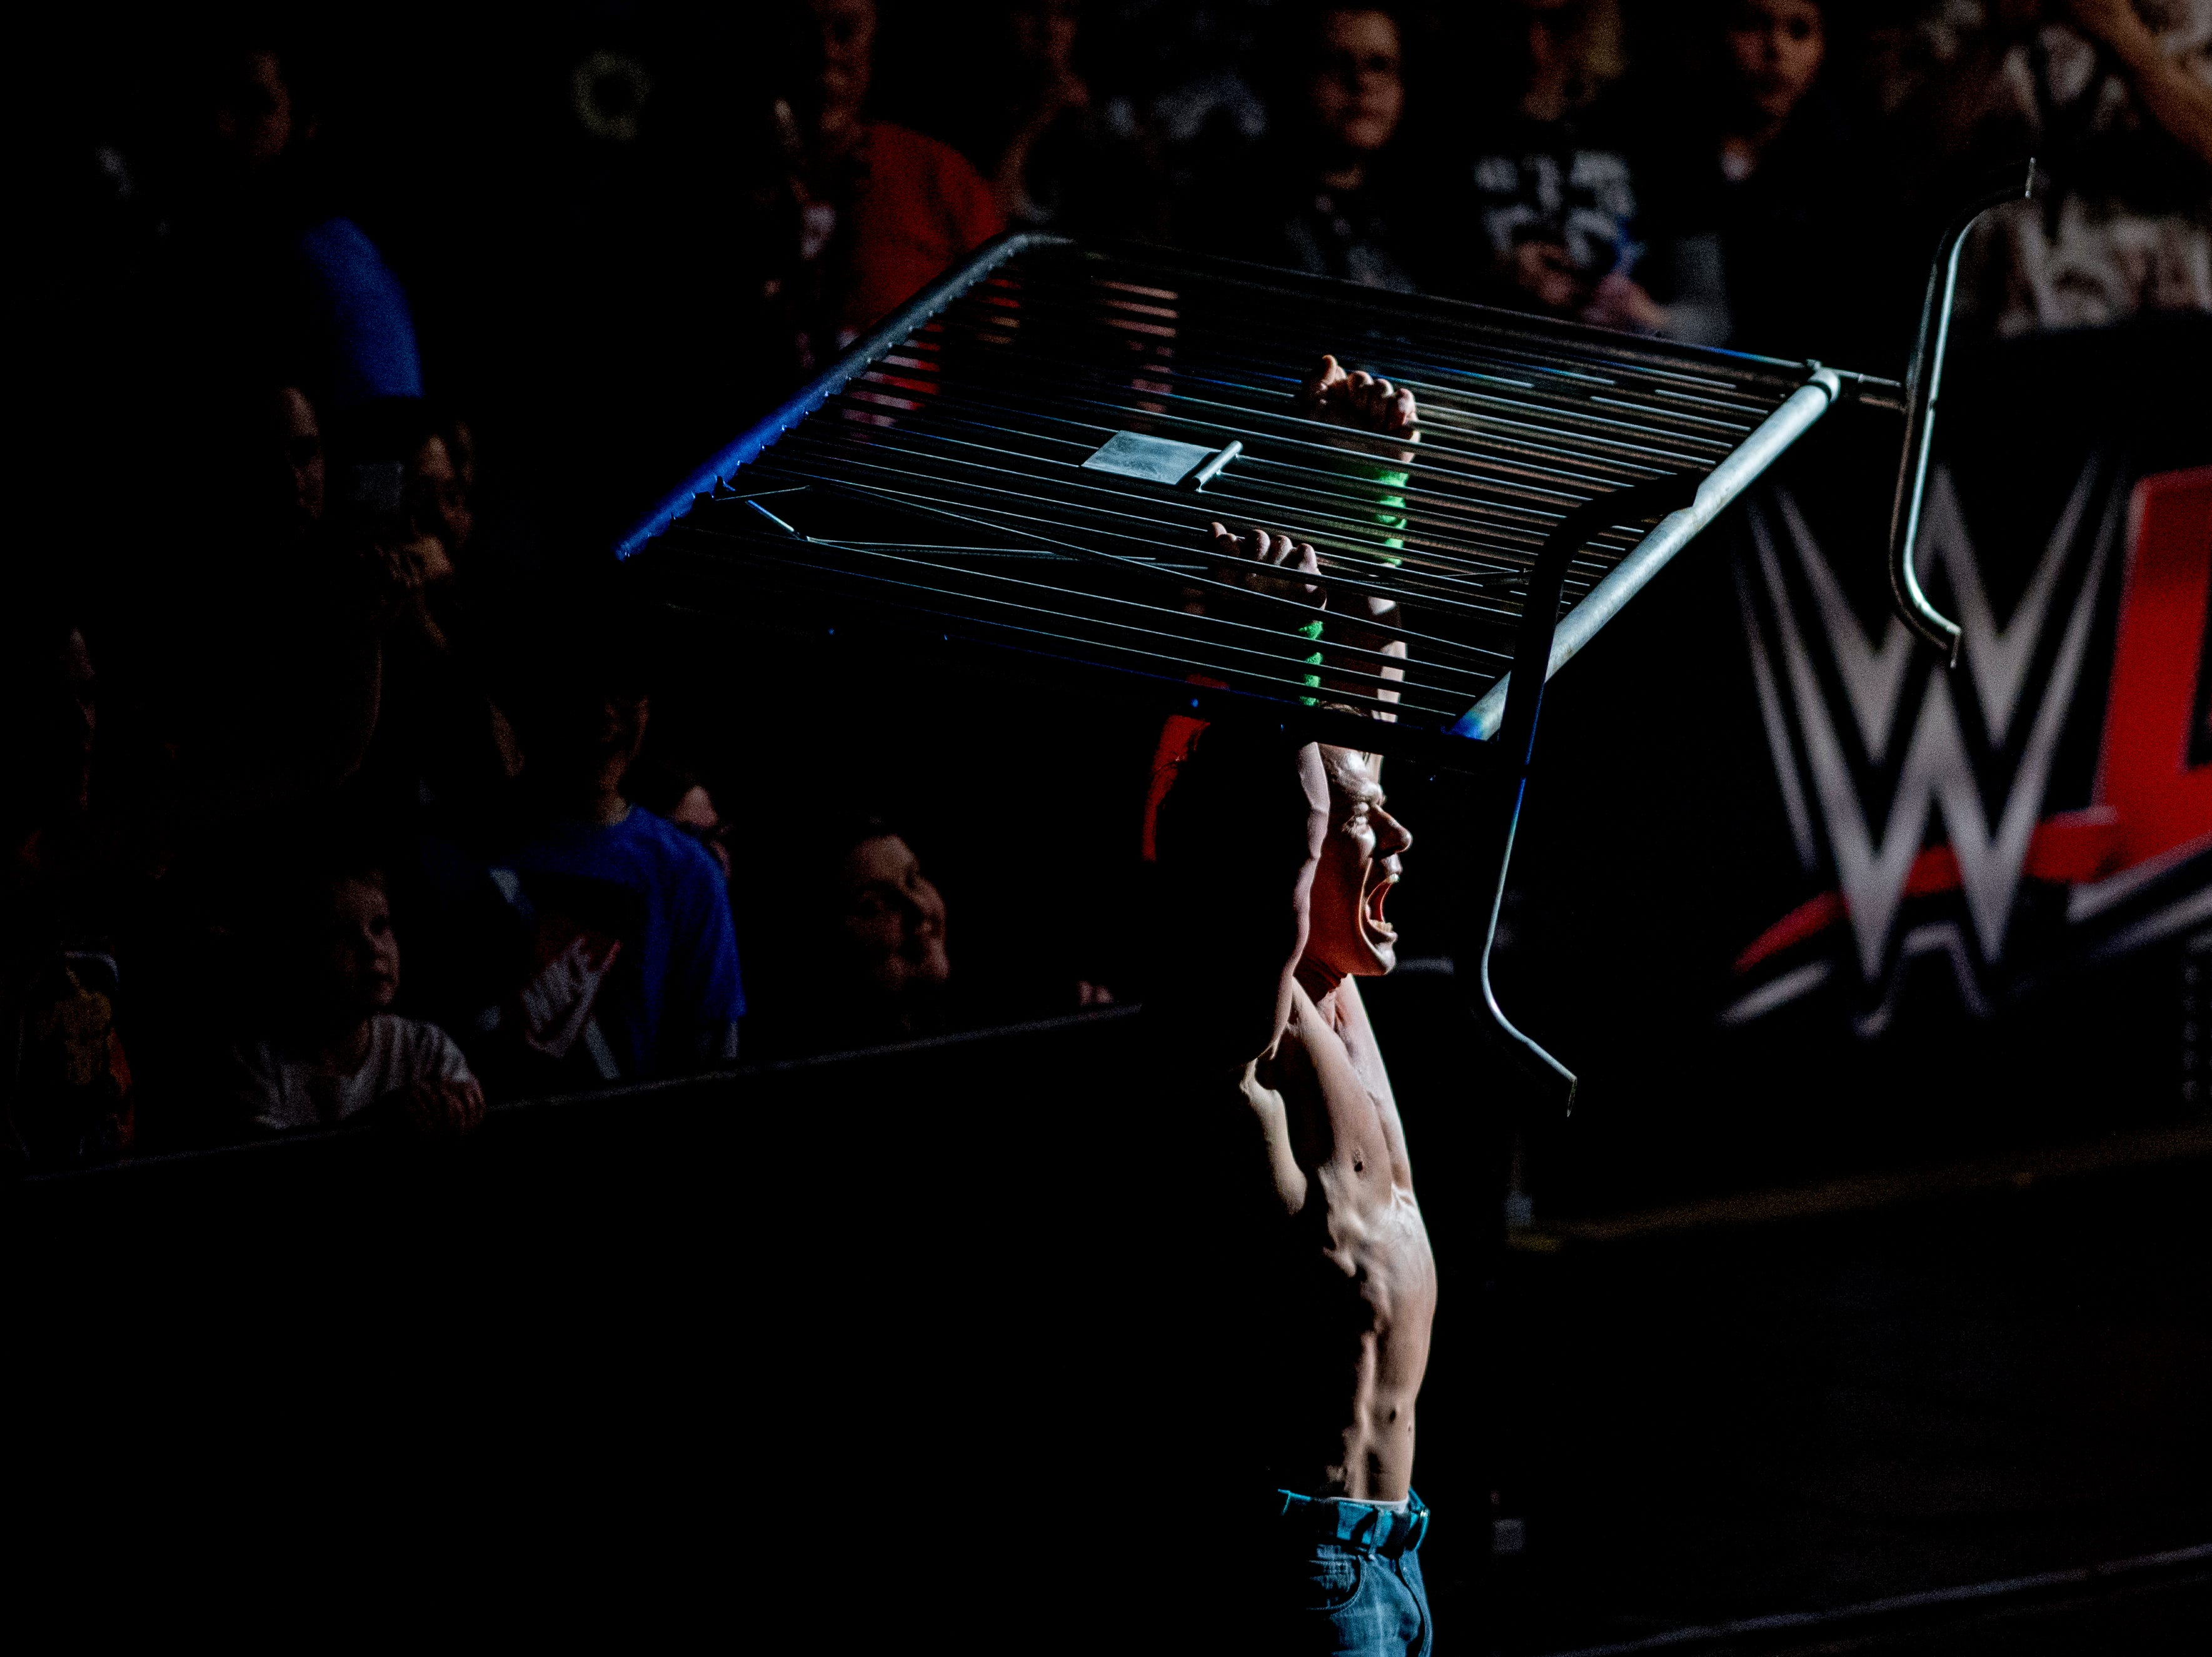 John Cena holds up a iron gate after hitting Baron Corbin with it during a WWE Live performance at the Knoxville Civic Coliseum in Knoxville, Tennessee on Saturday, January 12, 2019. *KNOXVILLE NEWS SENTINEL USE ONLY*